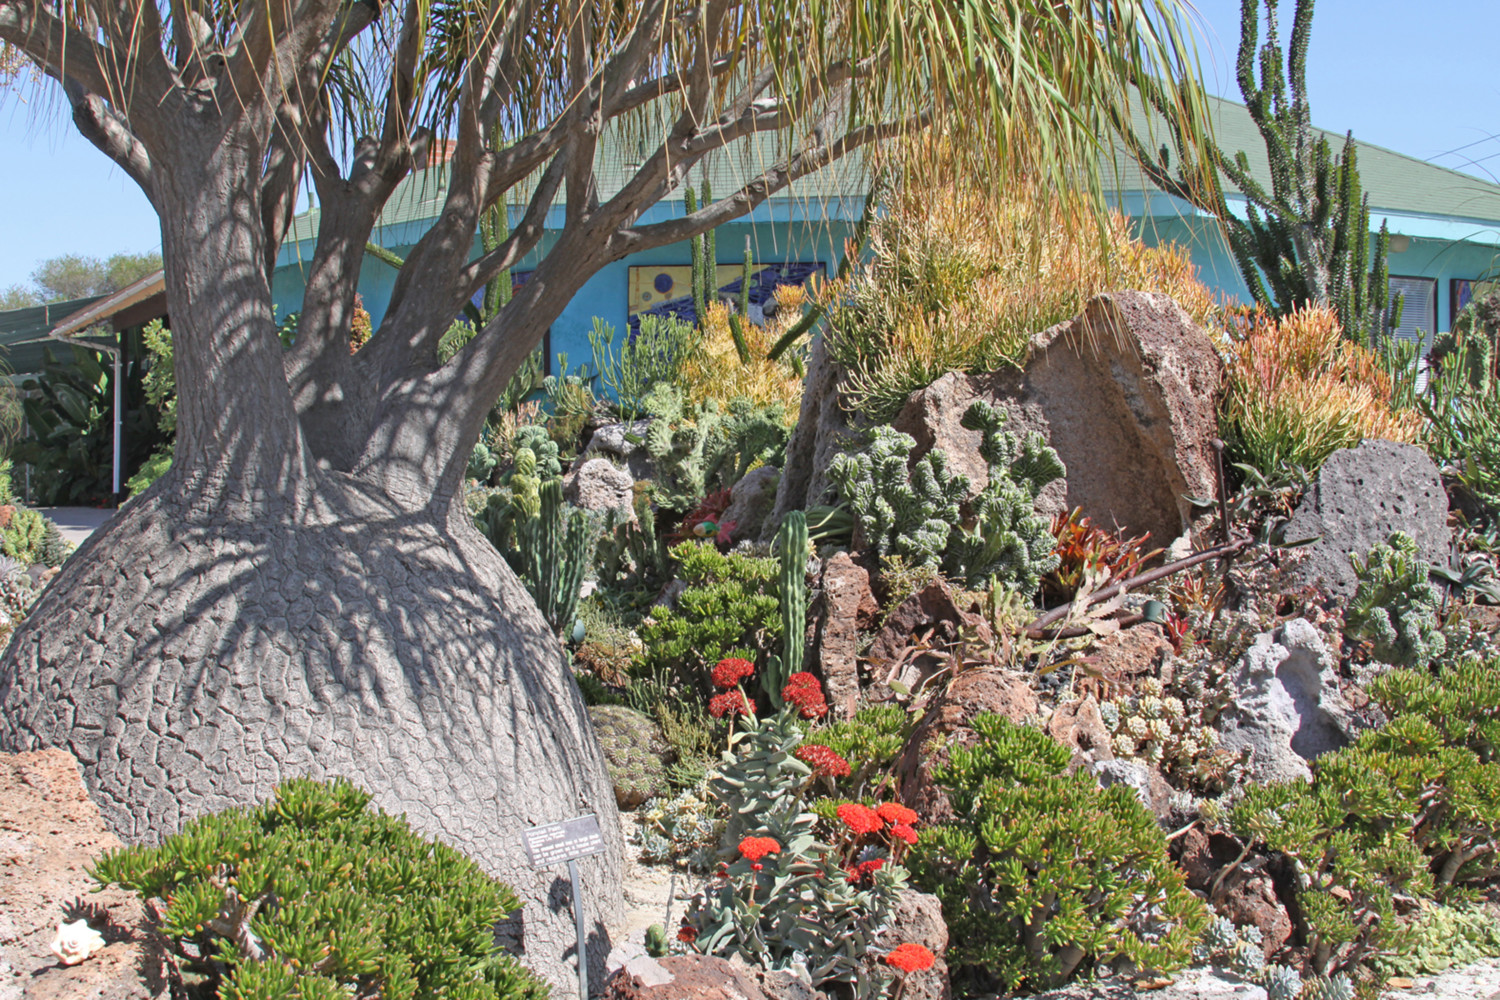 San Diego Botanic Garden To Host Succulent Show, Fall Festival This Weekend